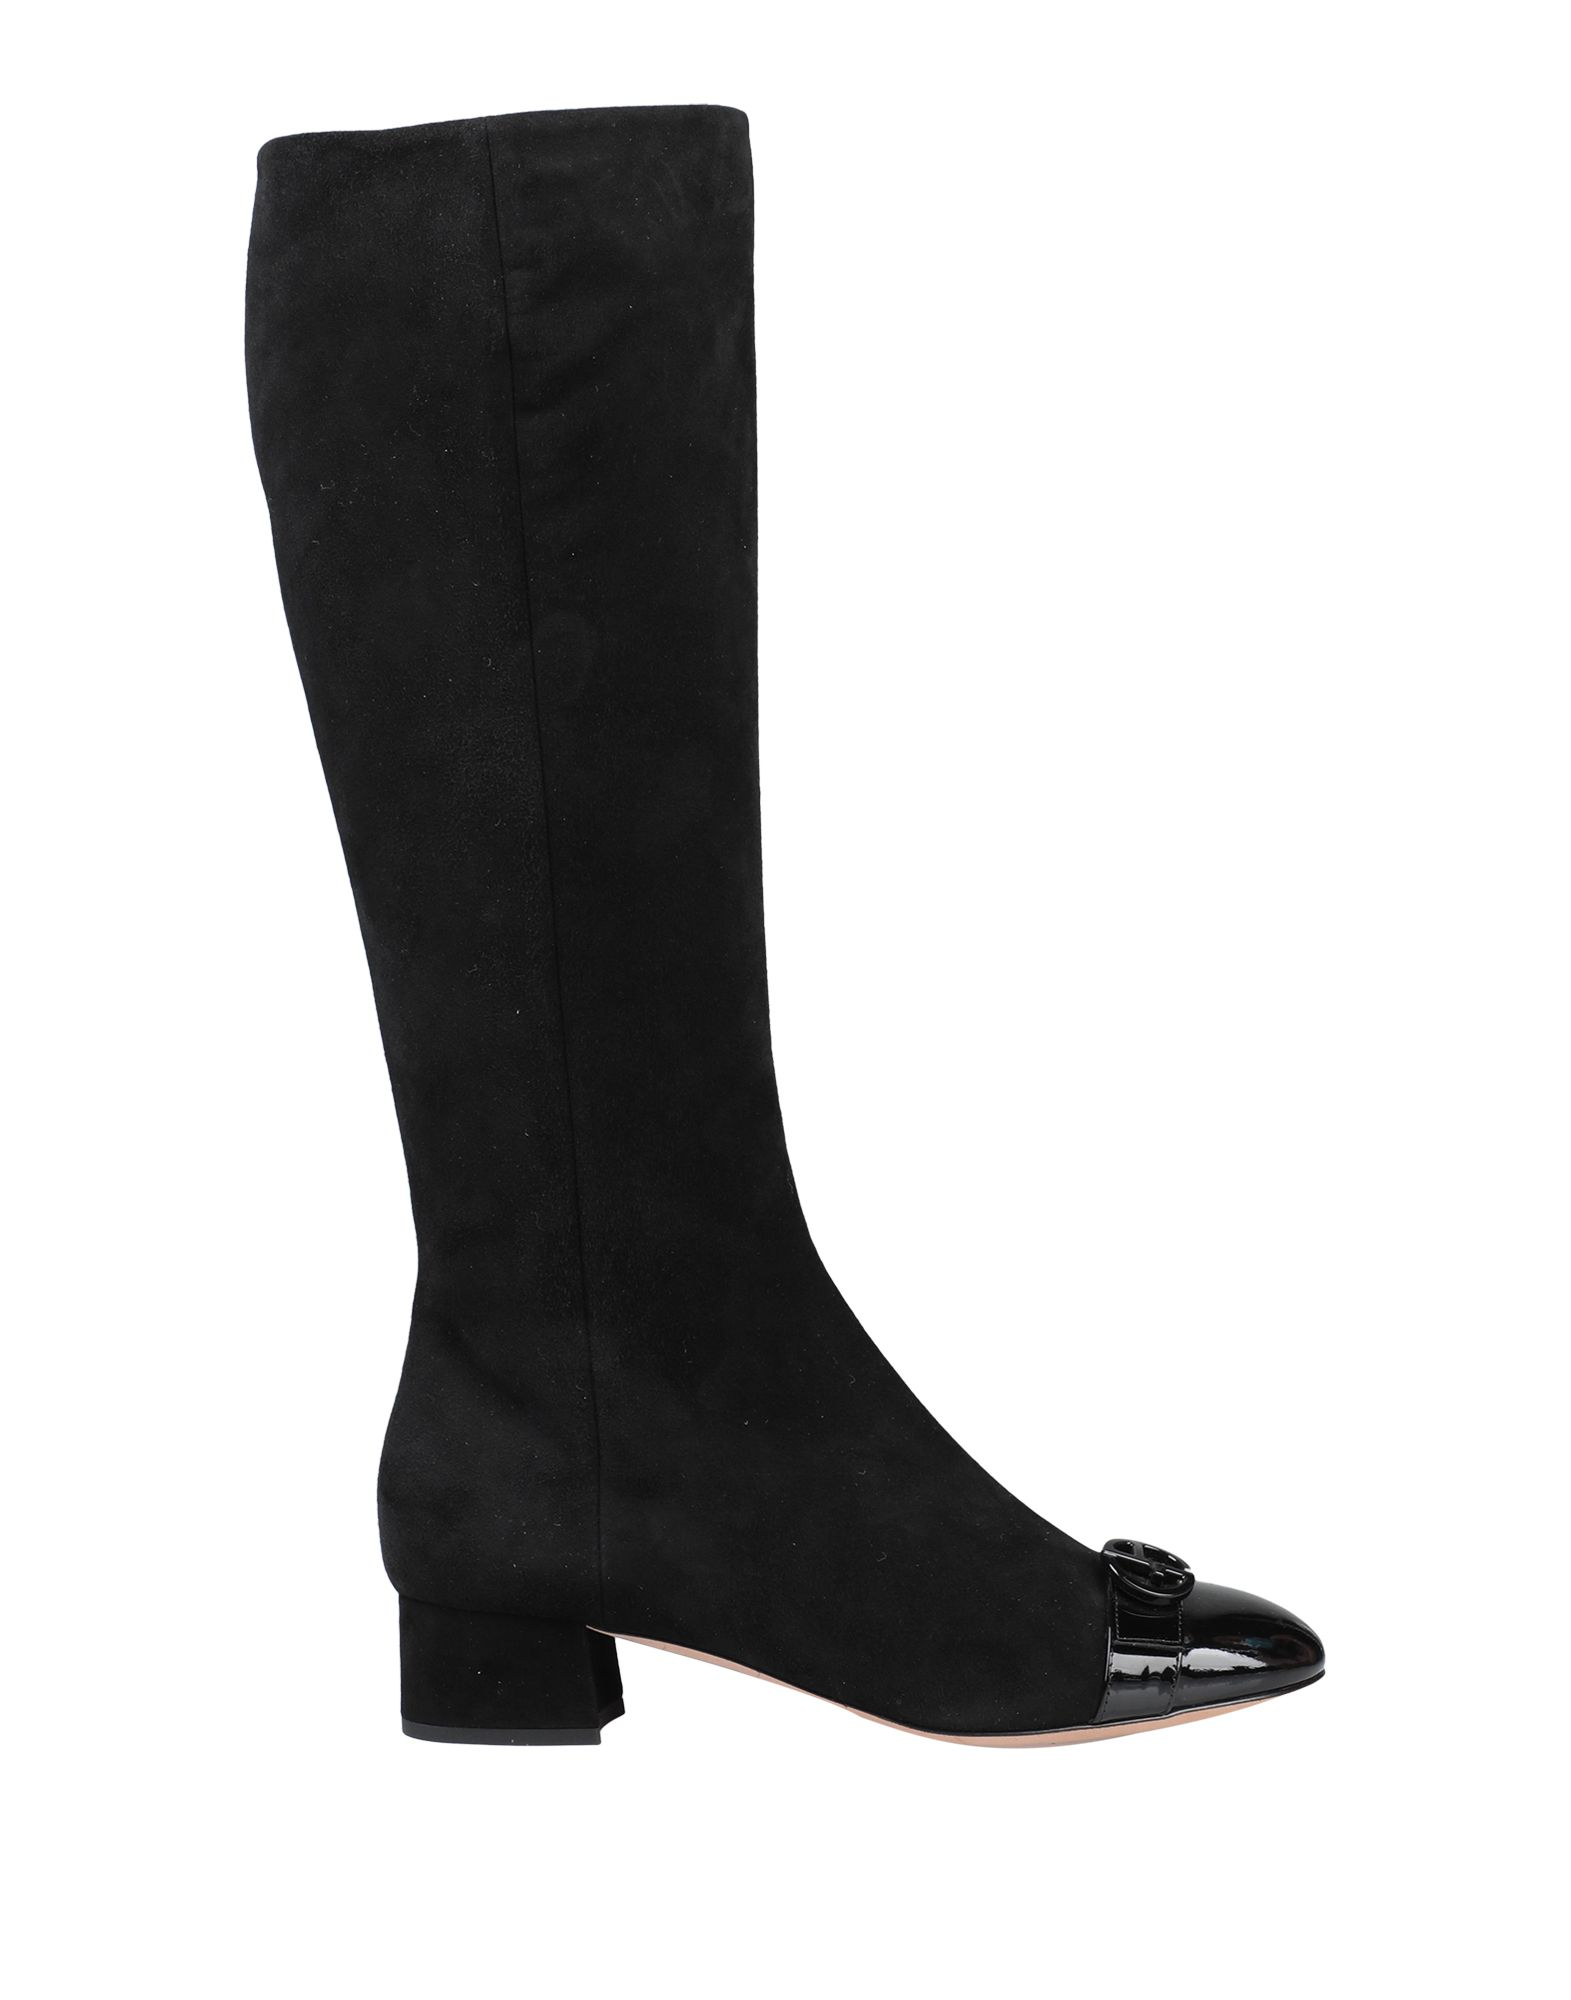 GIORGIO ARMANI Boots. suede effect, no appliqués, solid color, round toeline, square heel, covered heel, leather lining, leather sole, contains non-textile parts of animal origin. Soft Leather